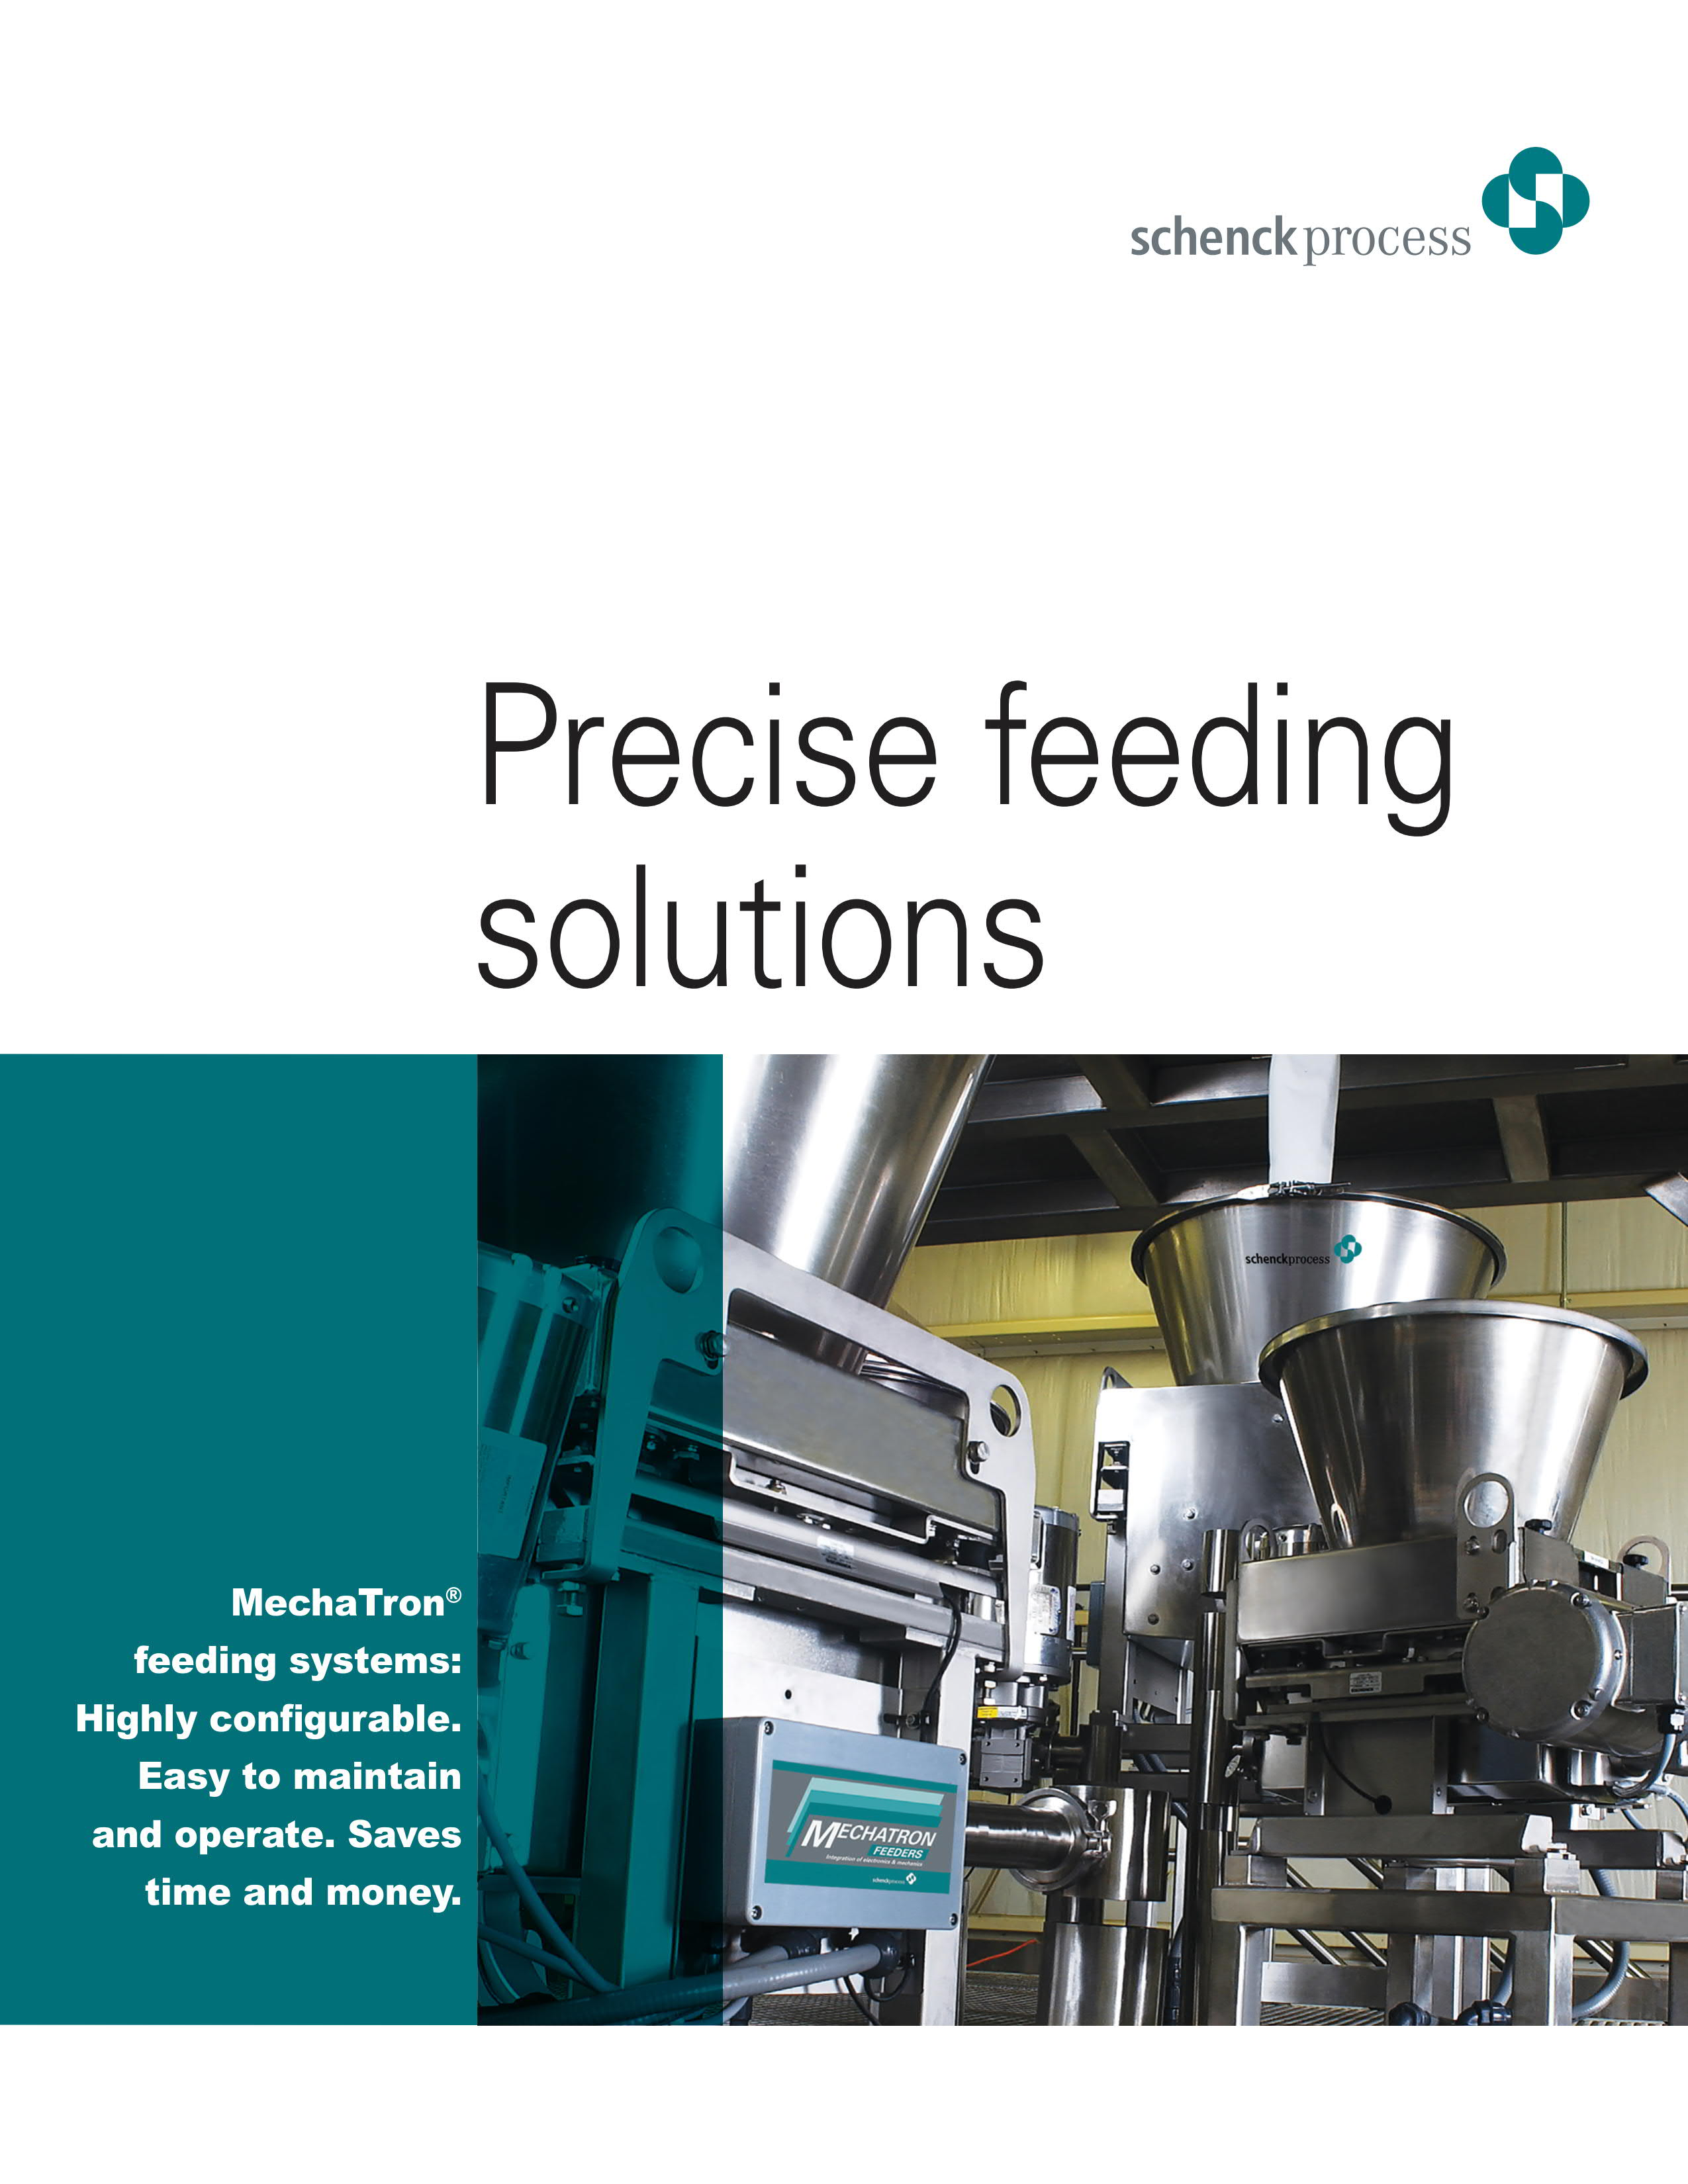 MechaTron® Precise Feeding Solutions (U.S. Version)